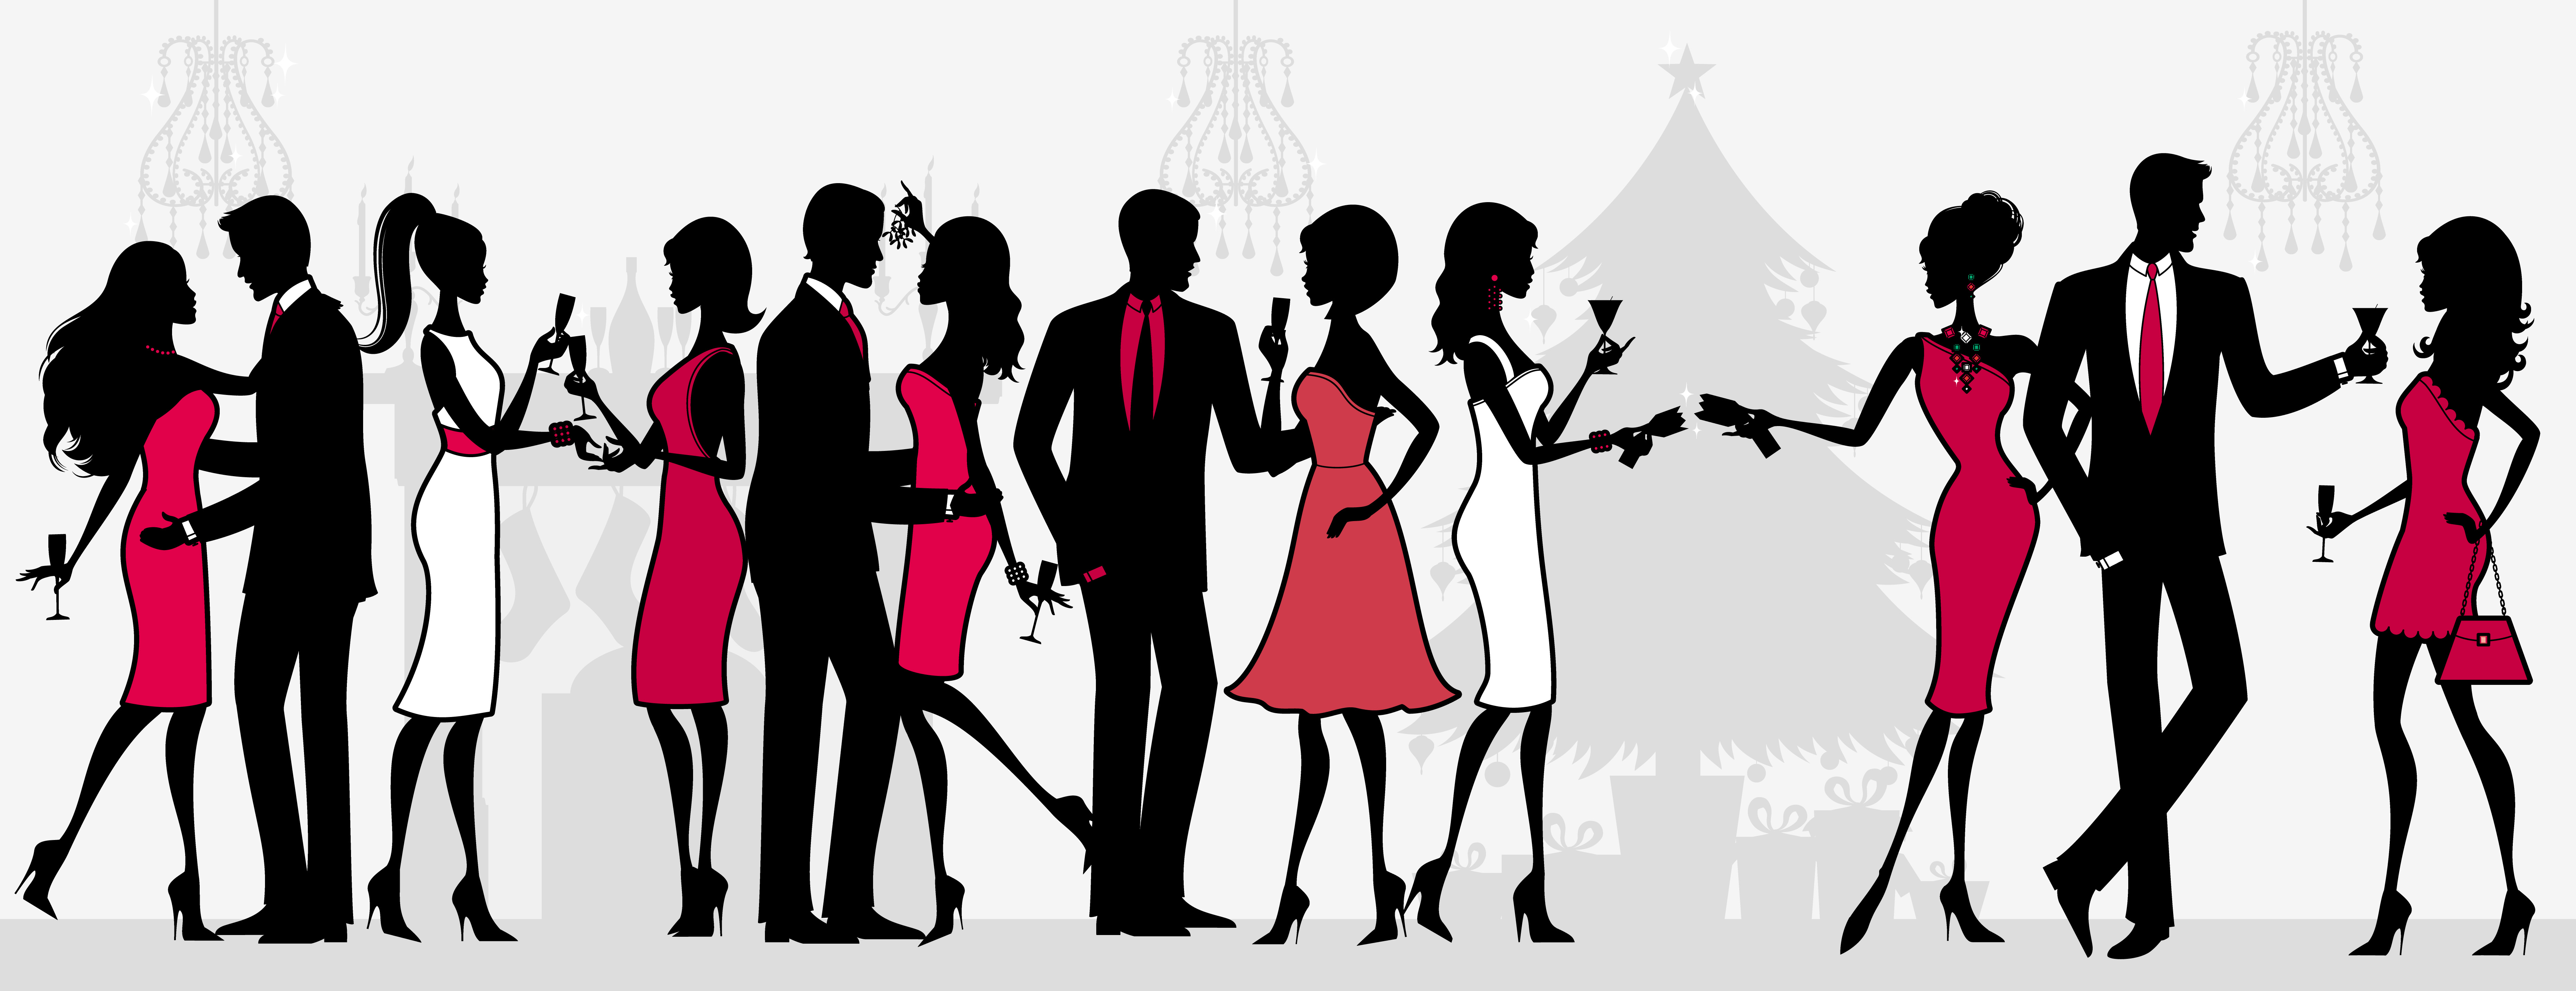 7456x2868 Office Clipart Office Party